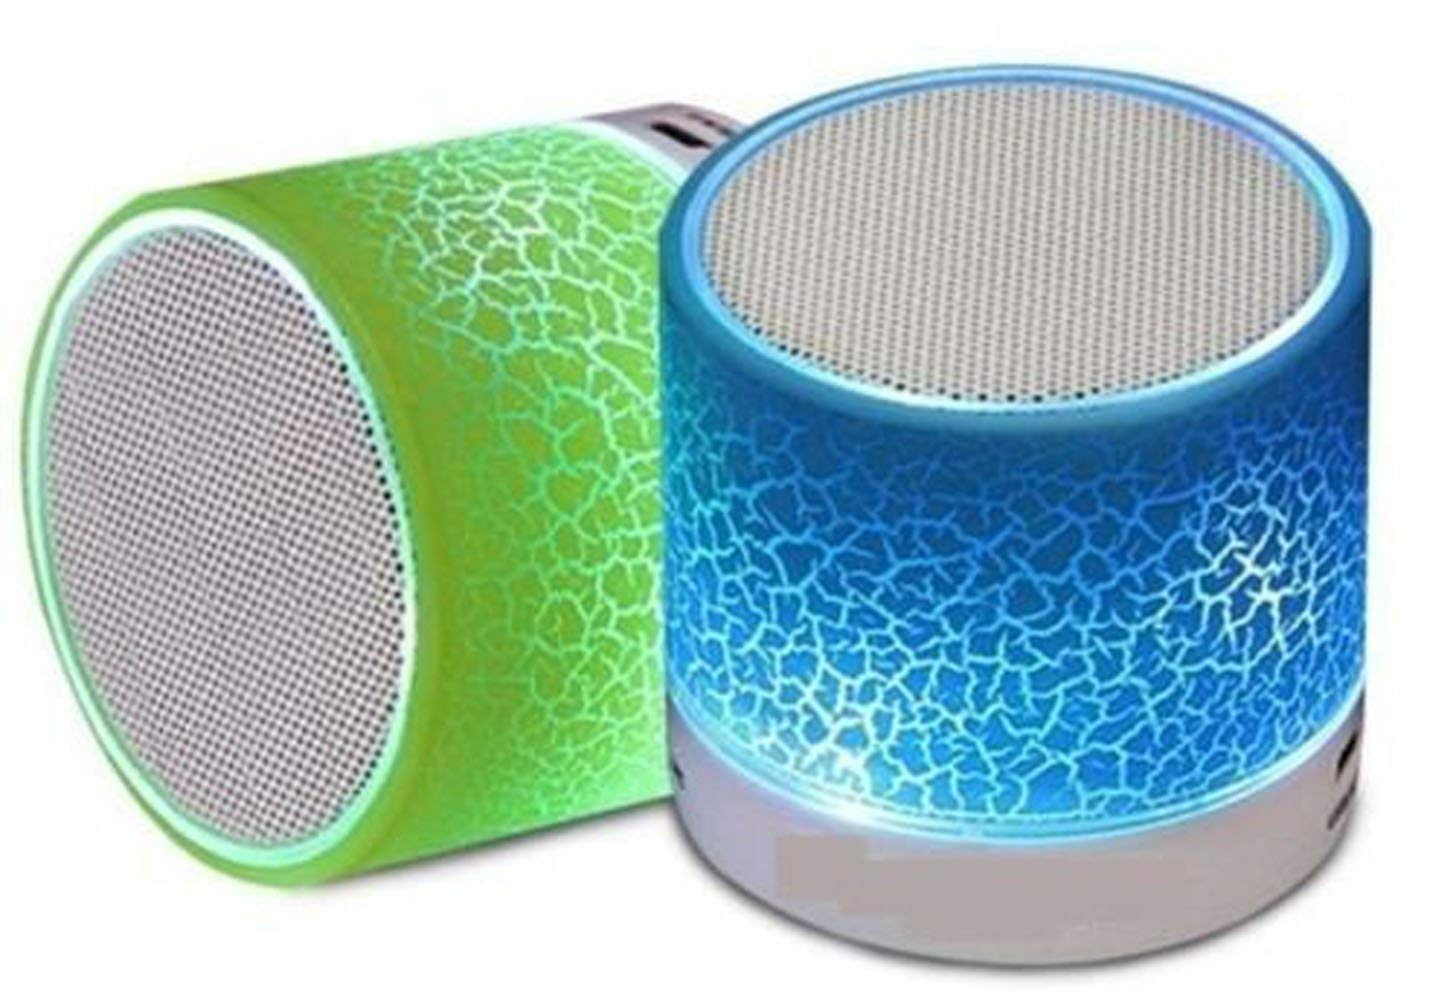 Wireless LED Bluetooth Speakers & FM Radio for All Android & iPhone Smartphones at Rs.219 only